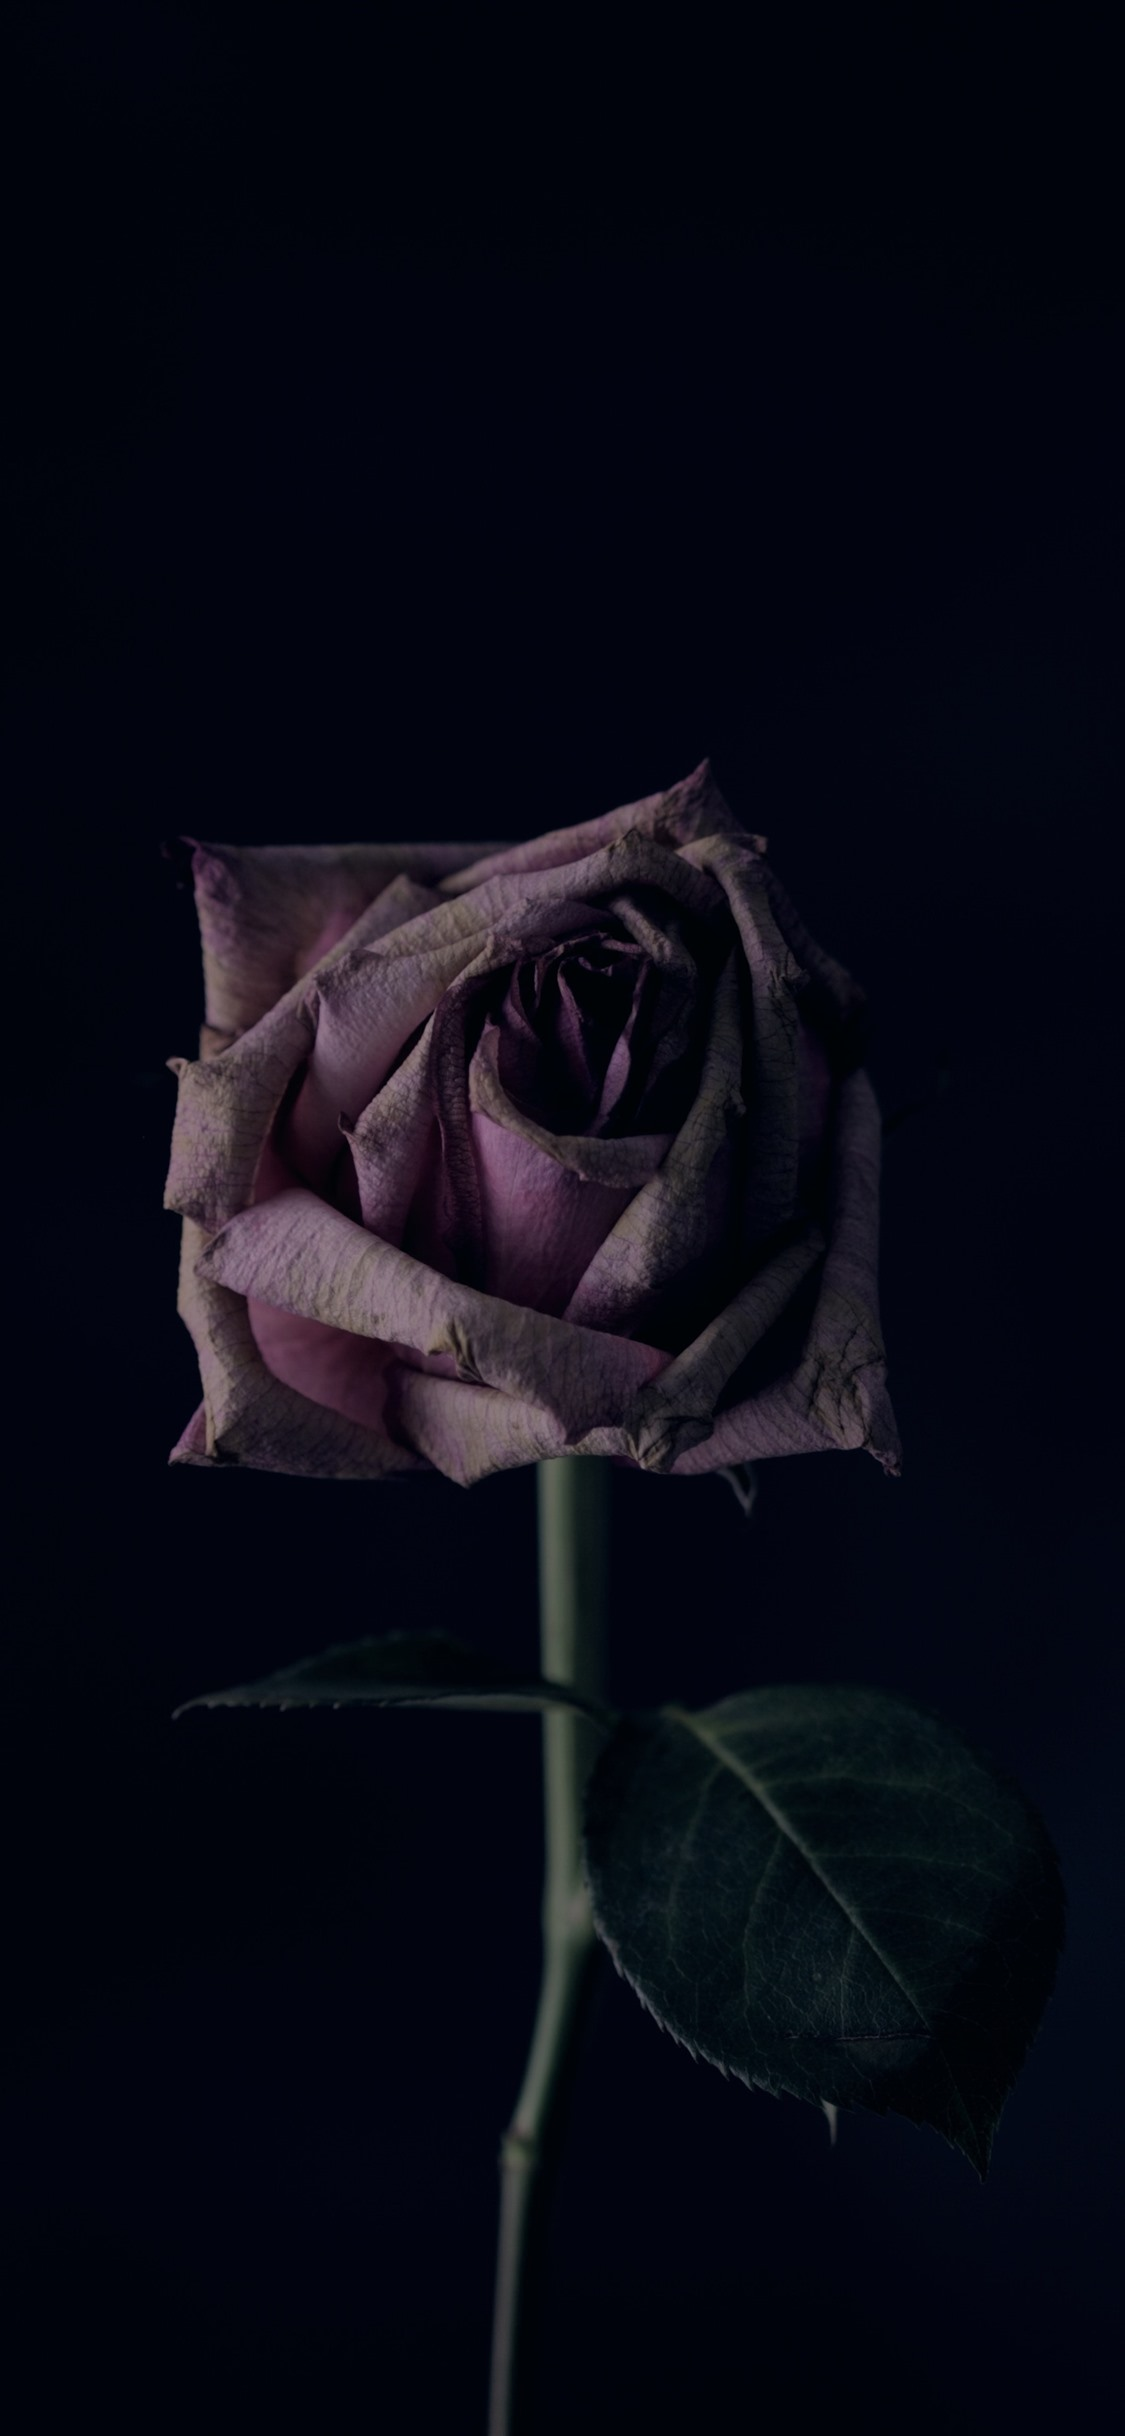 Rose Darkness 1242x2688 Iphone 11 Pro Xs Max Wallpaper Background Picture Image